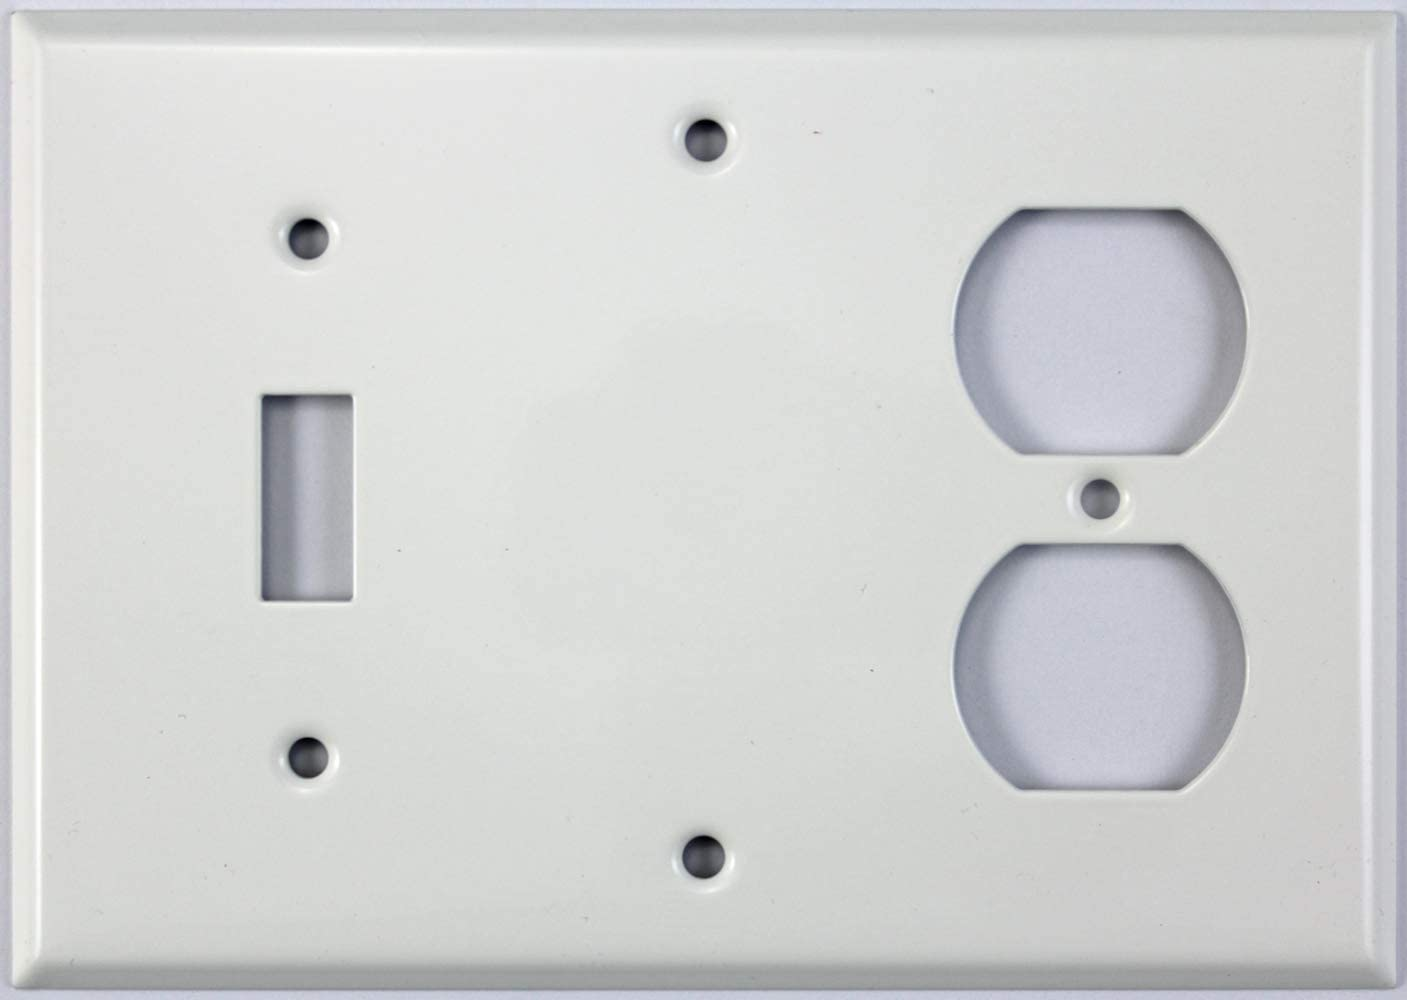 Smooth White 3 Gang Combo Wall Plate 1 Toggle Switch 1 Blank 1 Duplex Outlet Amazon Com